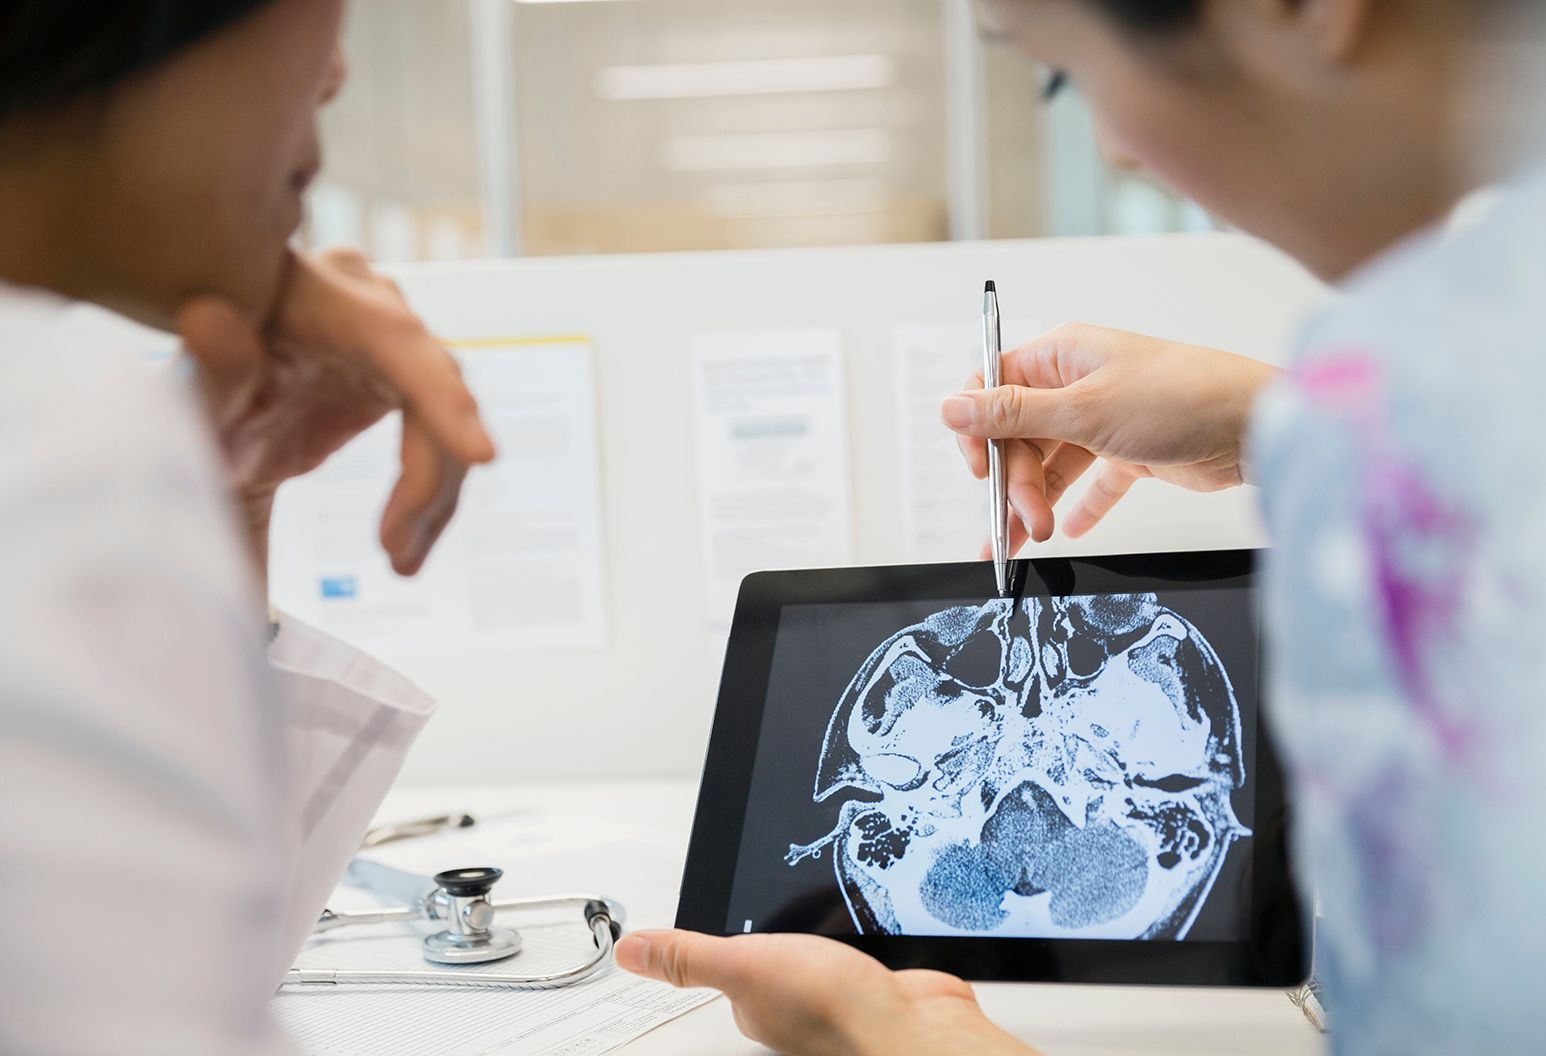 Two imaging technicians observing a brain scan on a tablet.